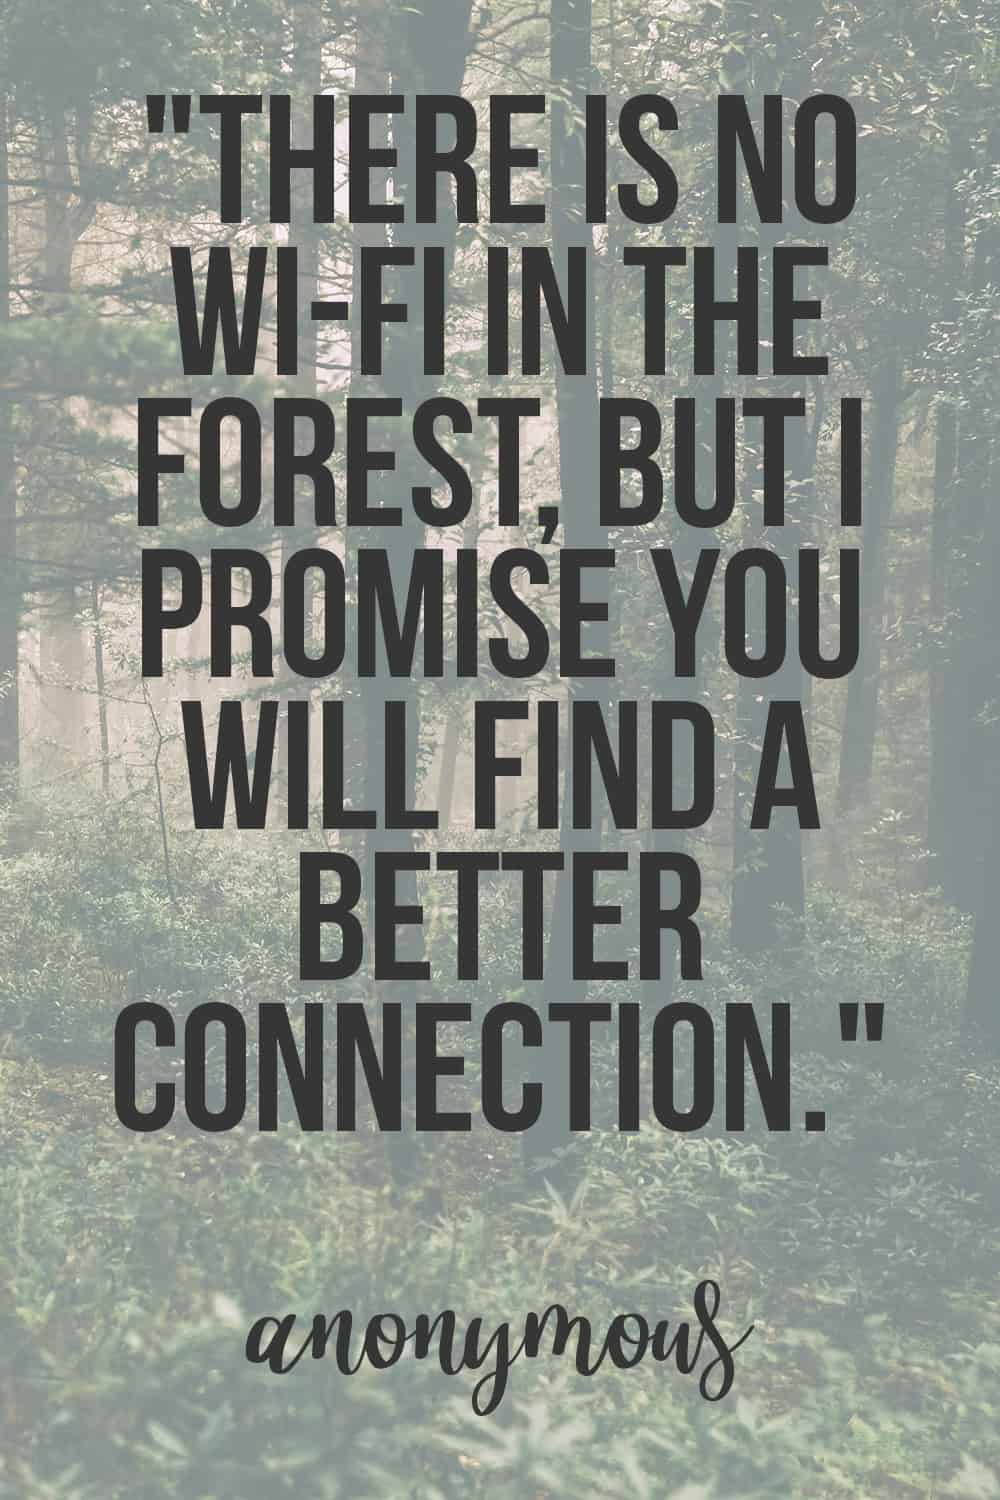 There is no wi-fi in the forest, but I promise you will find a better connection quote.